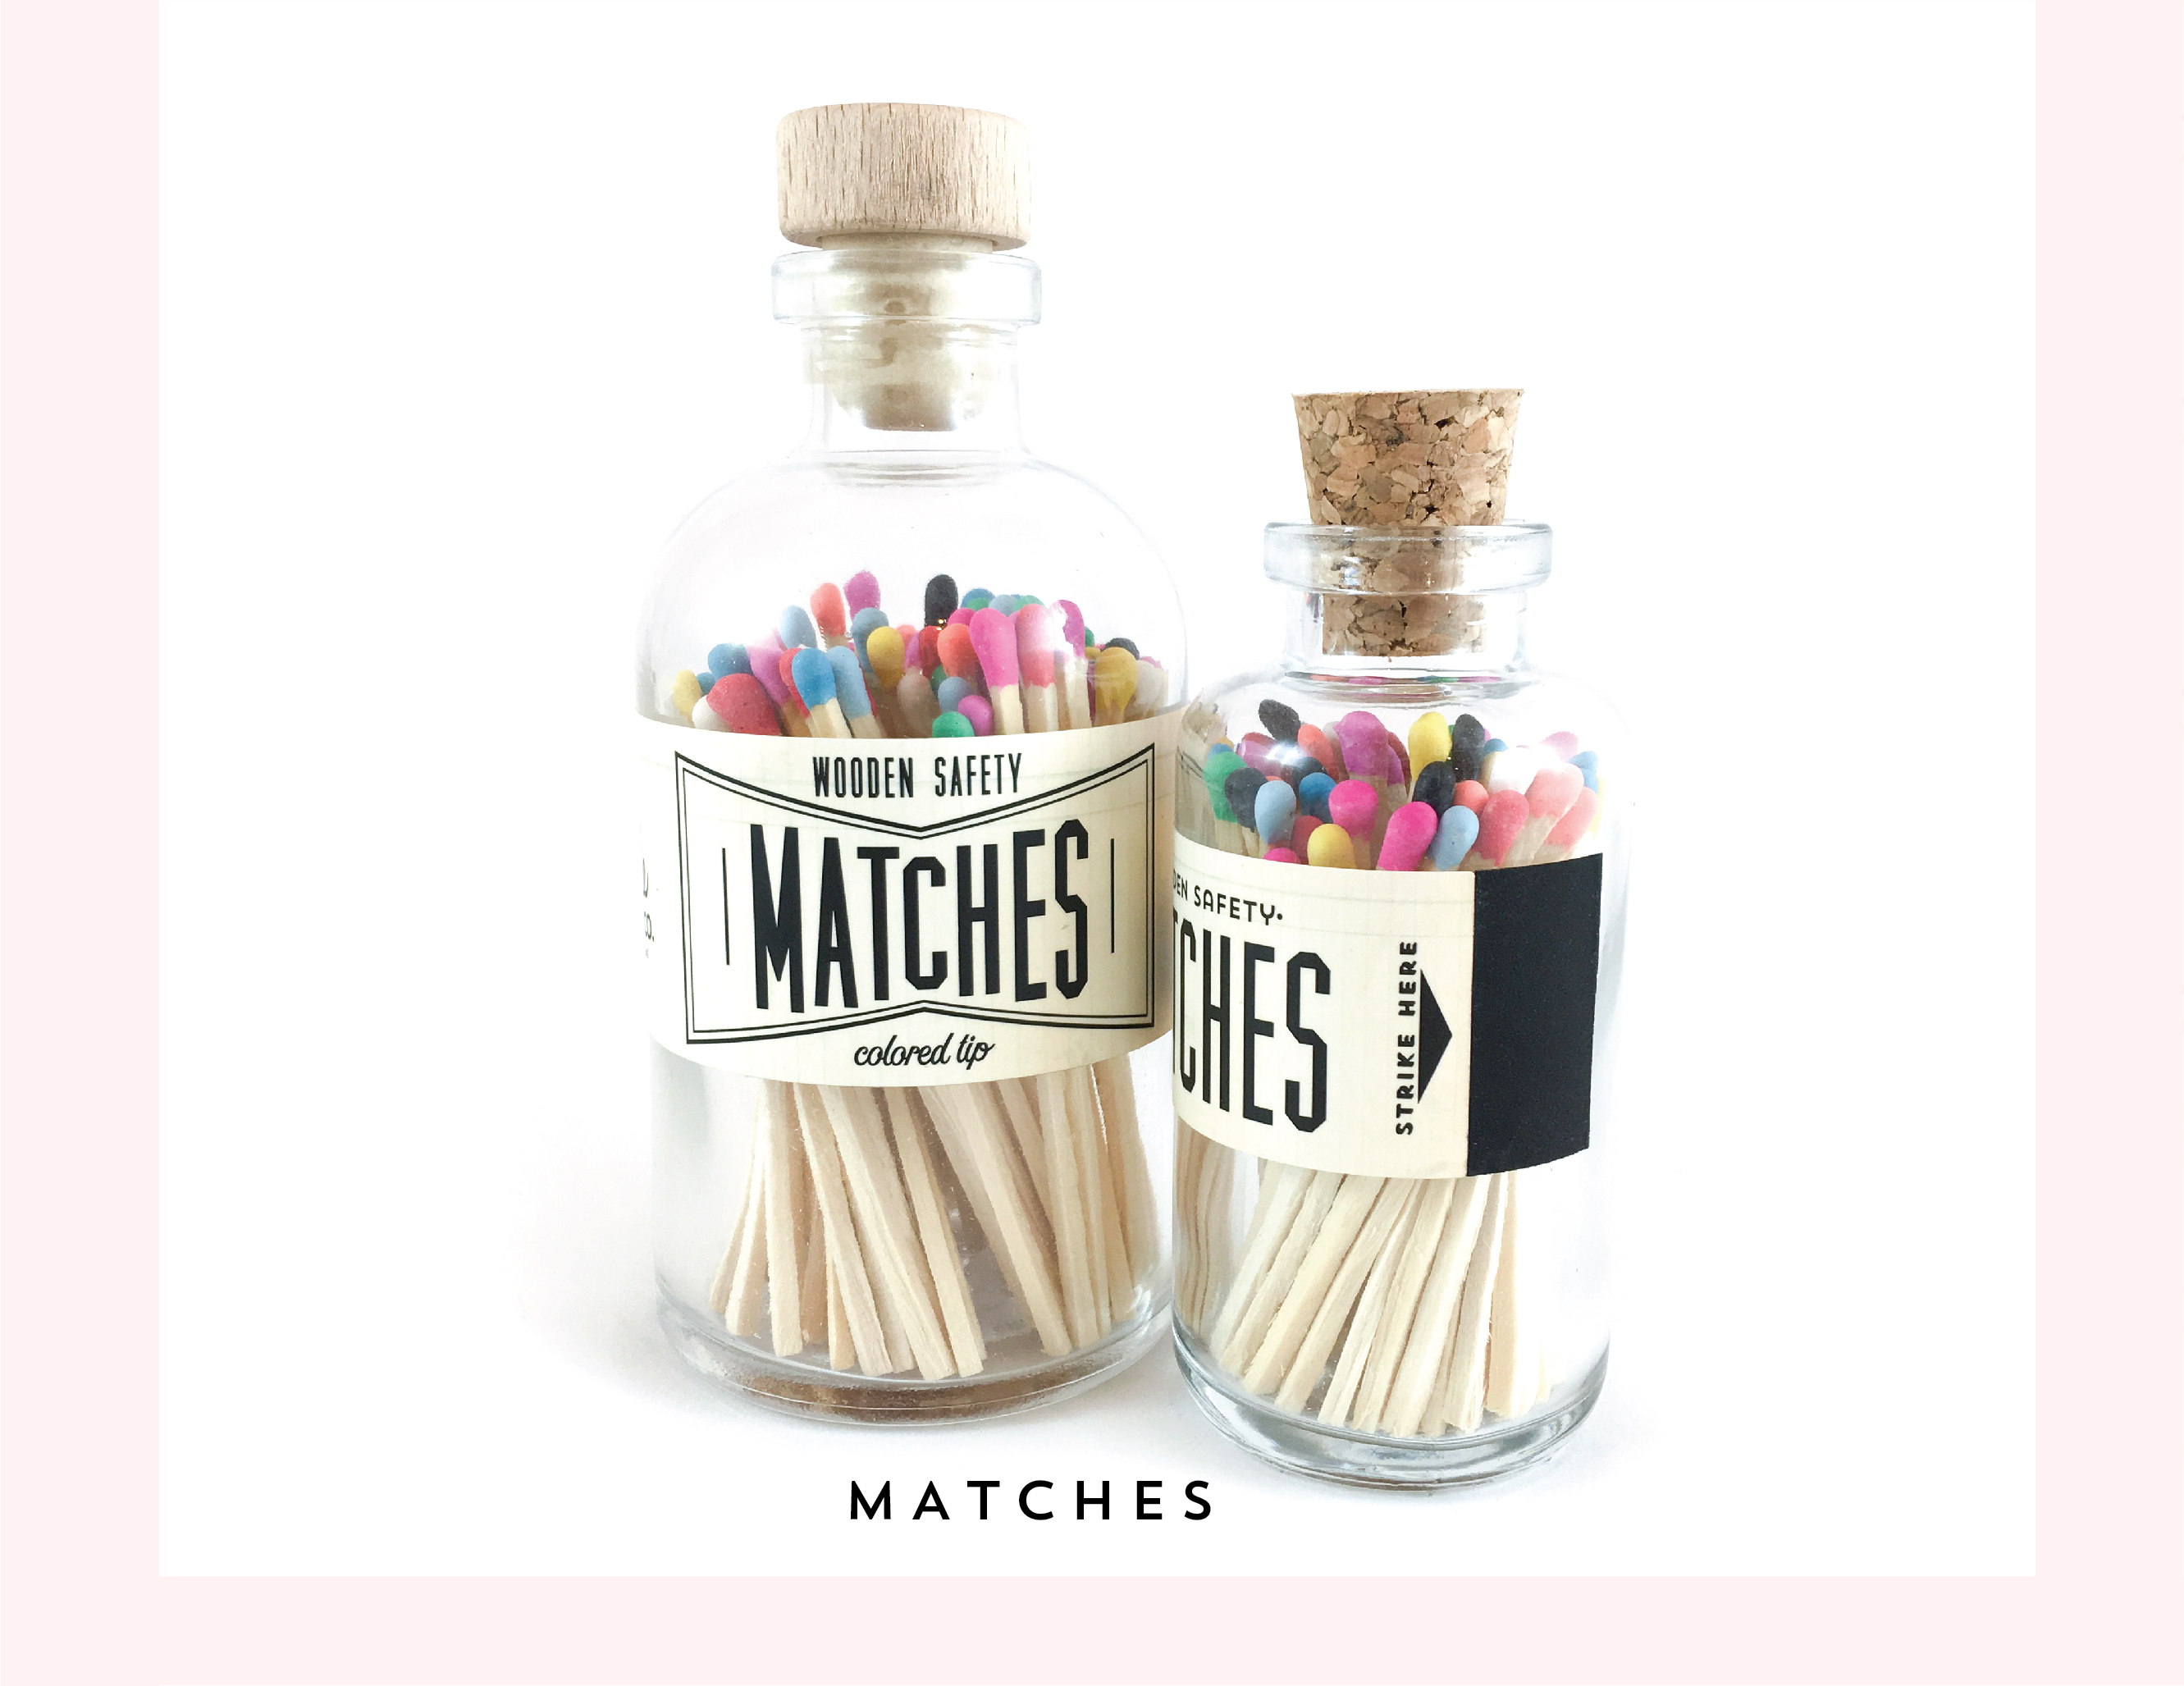 made-market-co.-internal-page-06.21.19-01-1.-matches.jpg